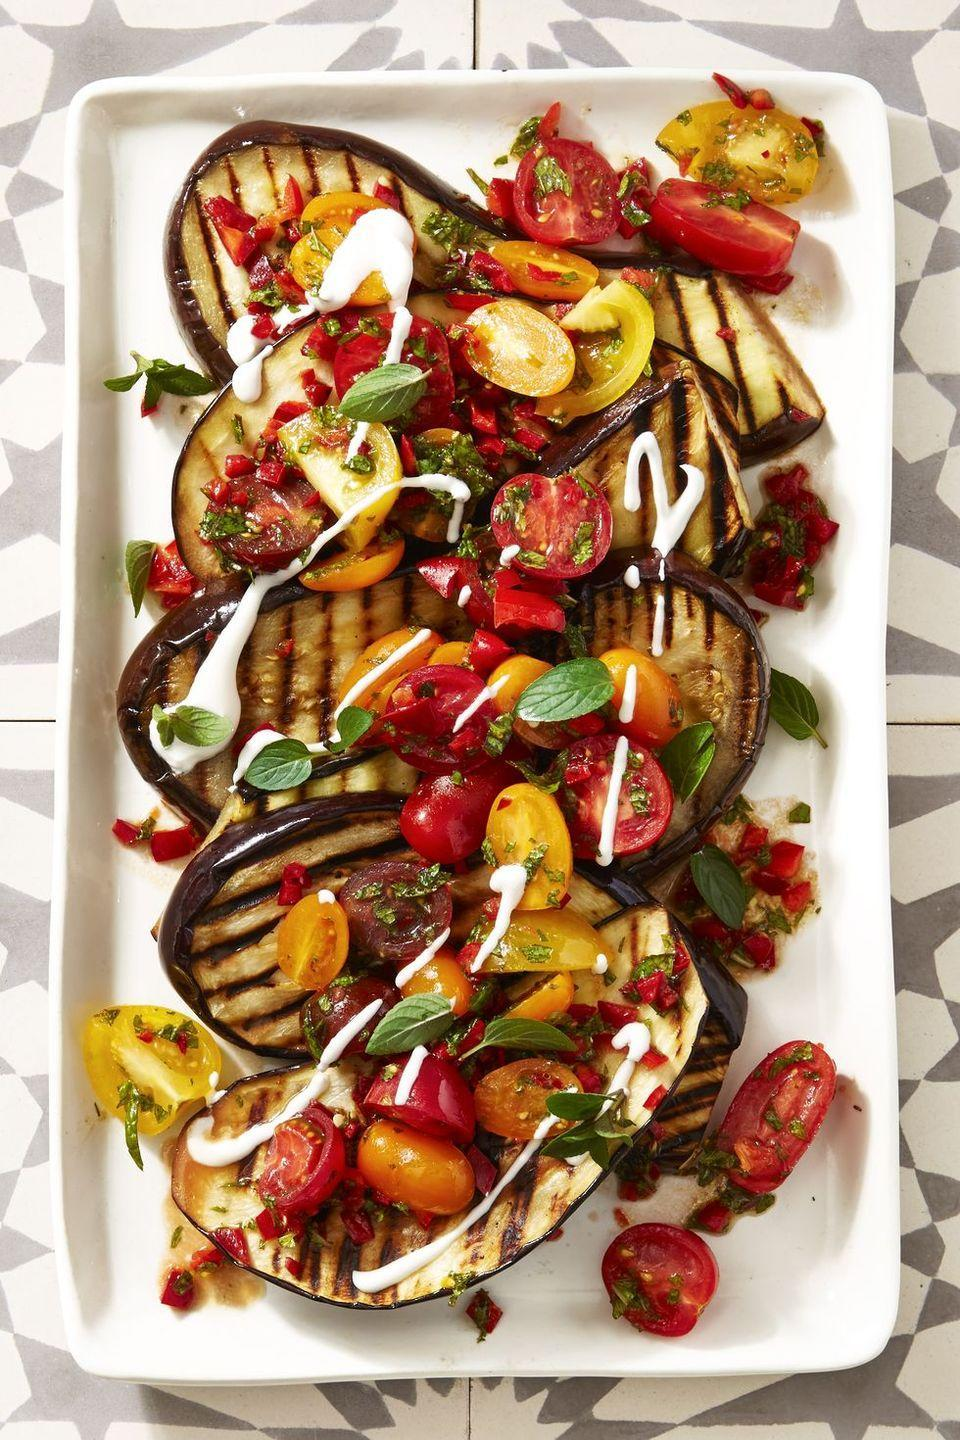 "<p>This simple dish can be assembled in 30 minutes, but it brings <em>all</em> the flavor — with spices like cayenne, coriander, mint and chiles — and colors that'll make your drool.</p><p><a href=""https://www.goodhousekeeping.com/food-recipes/a39935/cayenne-grilled-eggplant-with-fresh-tomato-salad-recipe/"" rel=""nofollow noopener"" target=""_blank"" data-ylk=""slk:Get the recipe for Cayenne Grilled Eggplant with Fresh Tomato Salad »"" class=""link rapid-noclick-resp""><em>Get the recipe for Cayenne Grilled Eggplant with Fresh Tomato Salad »</em></a></p>"